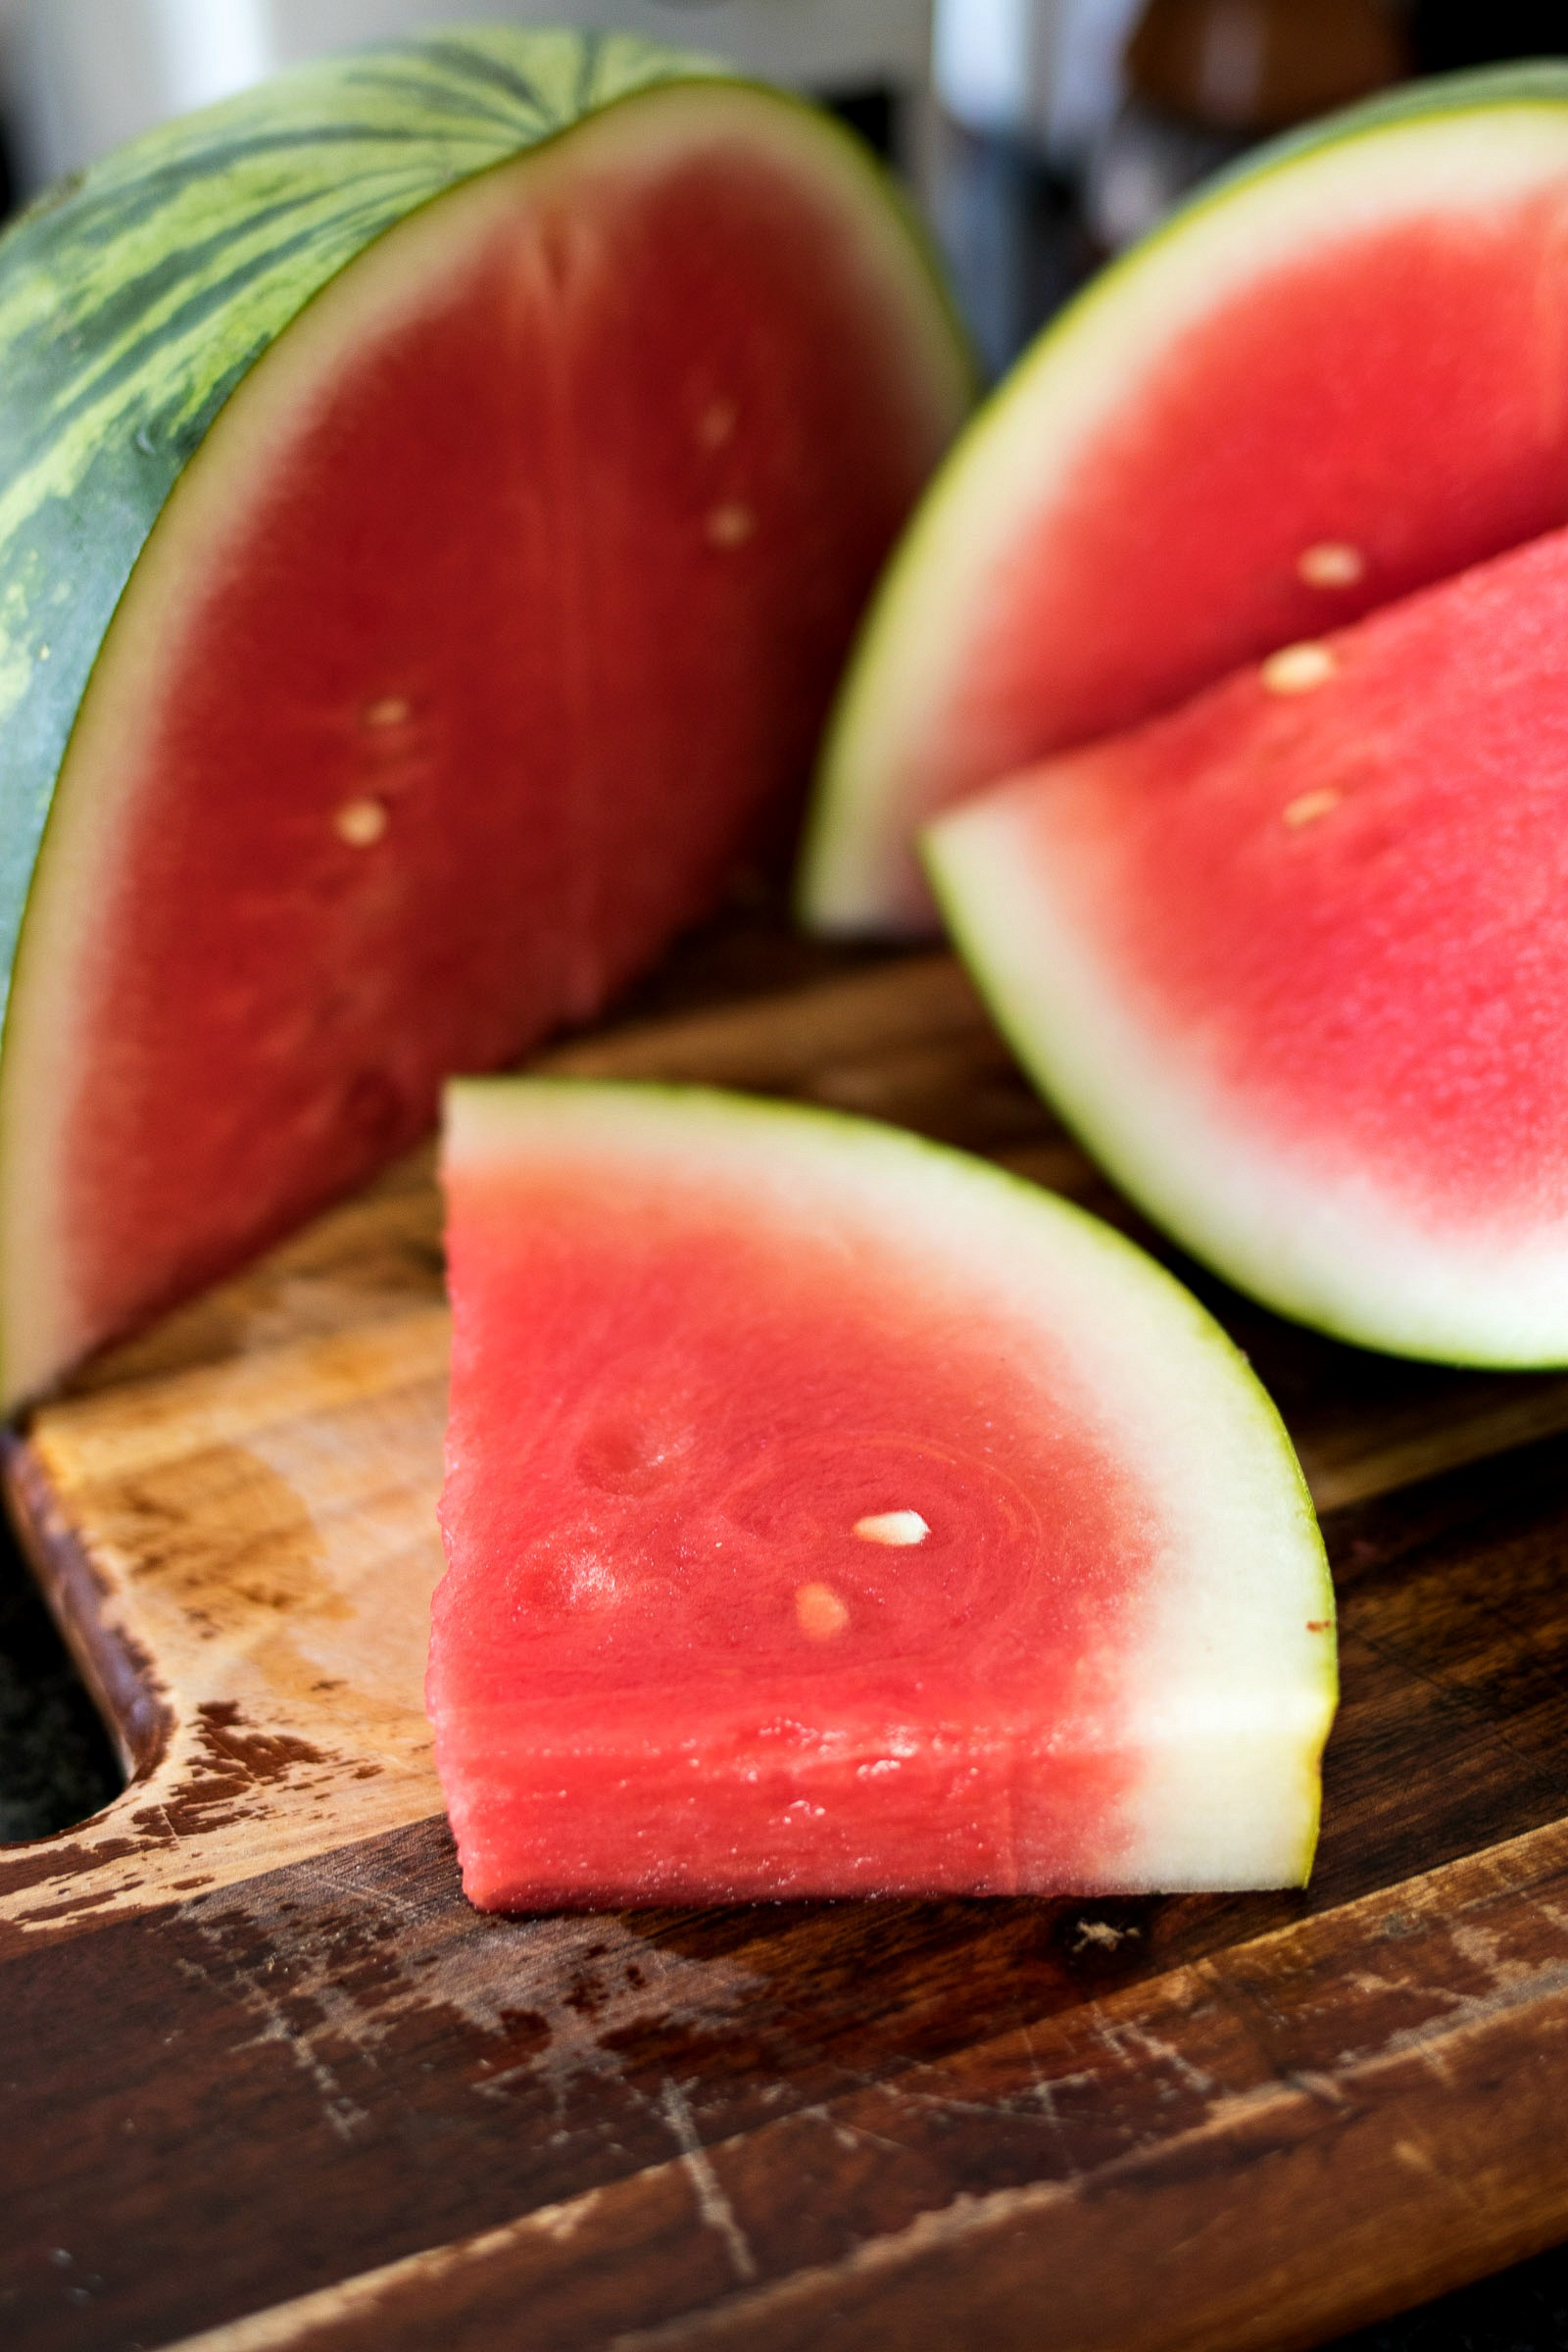 Watermelon cut into pieces